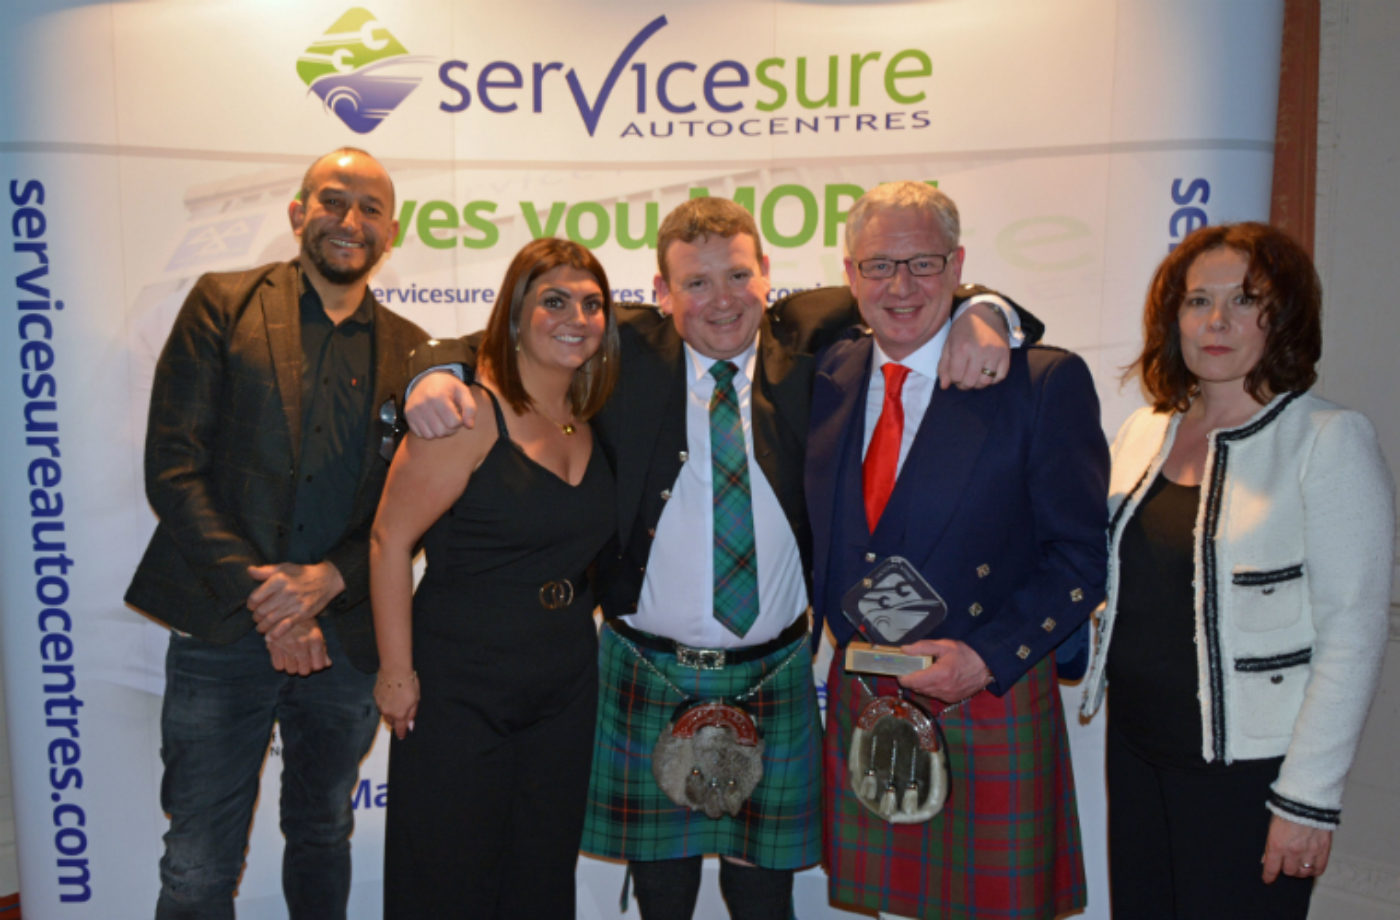 Servicesure Autocentre of the Year Award winner announced